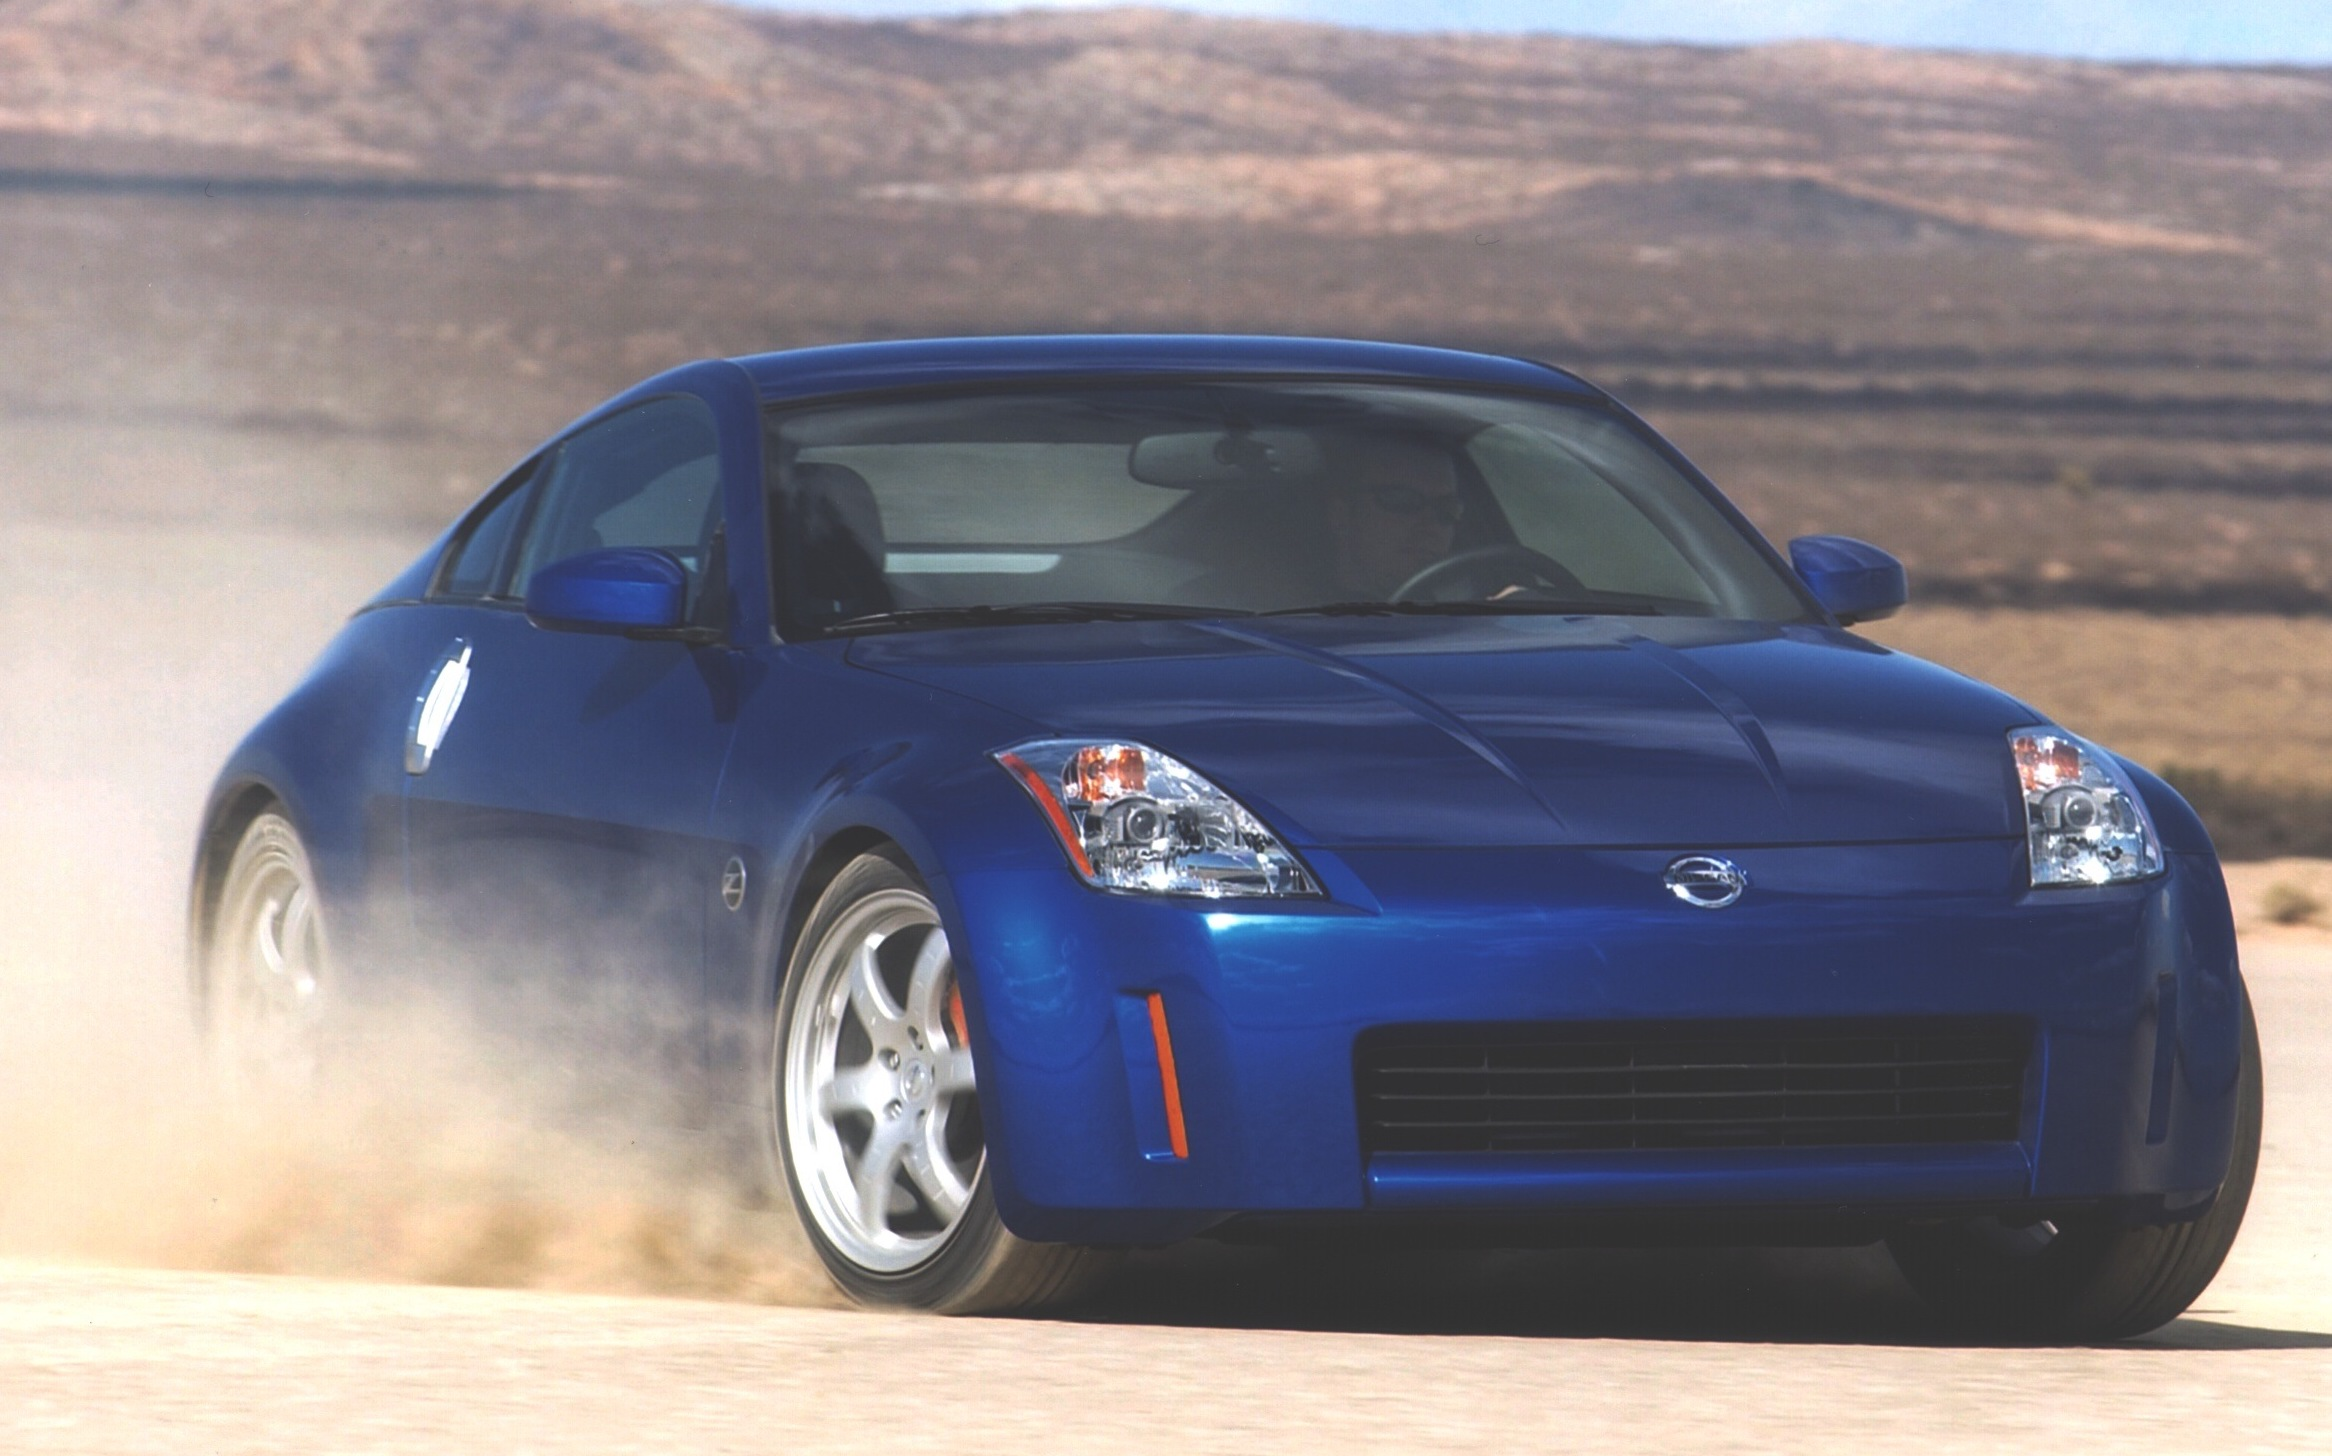 Nissan 350Z in front of mountains